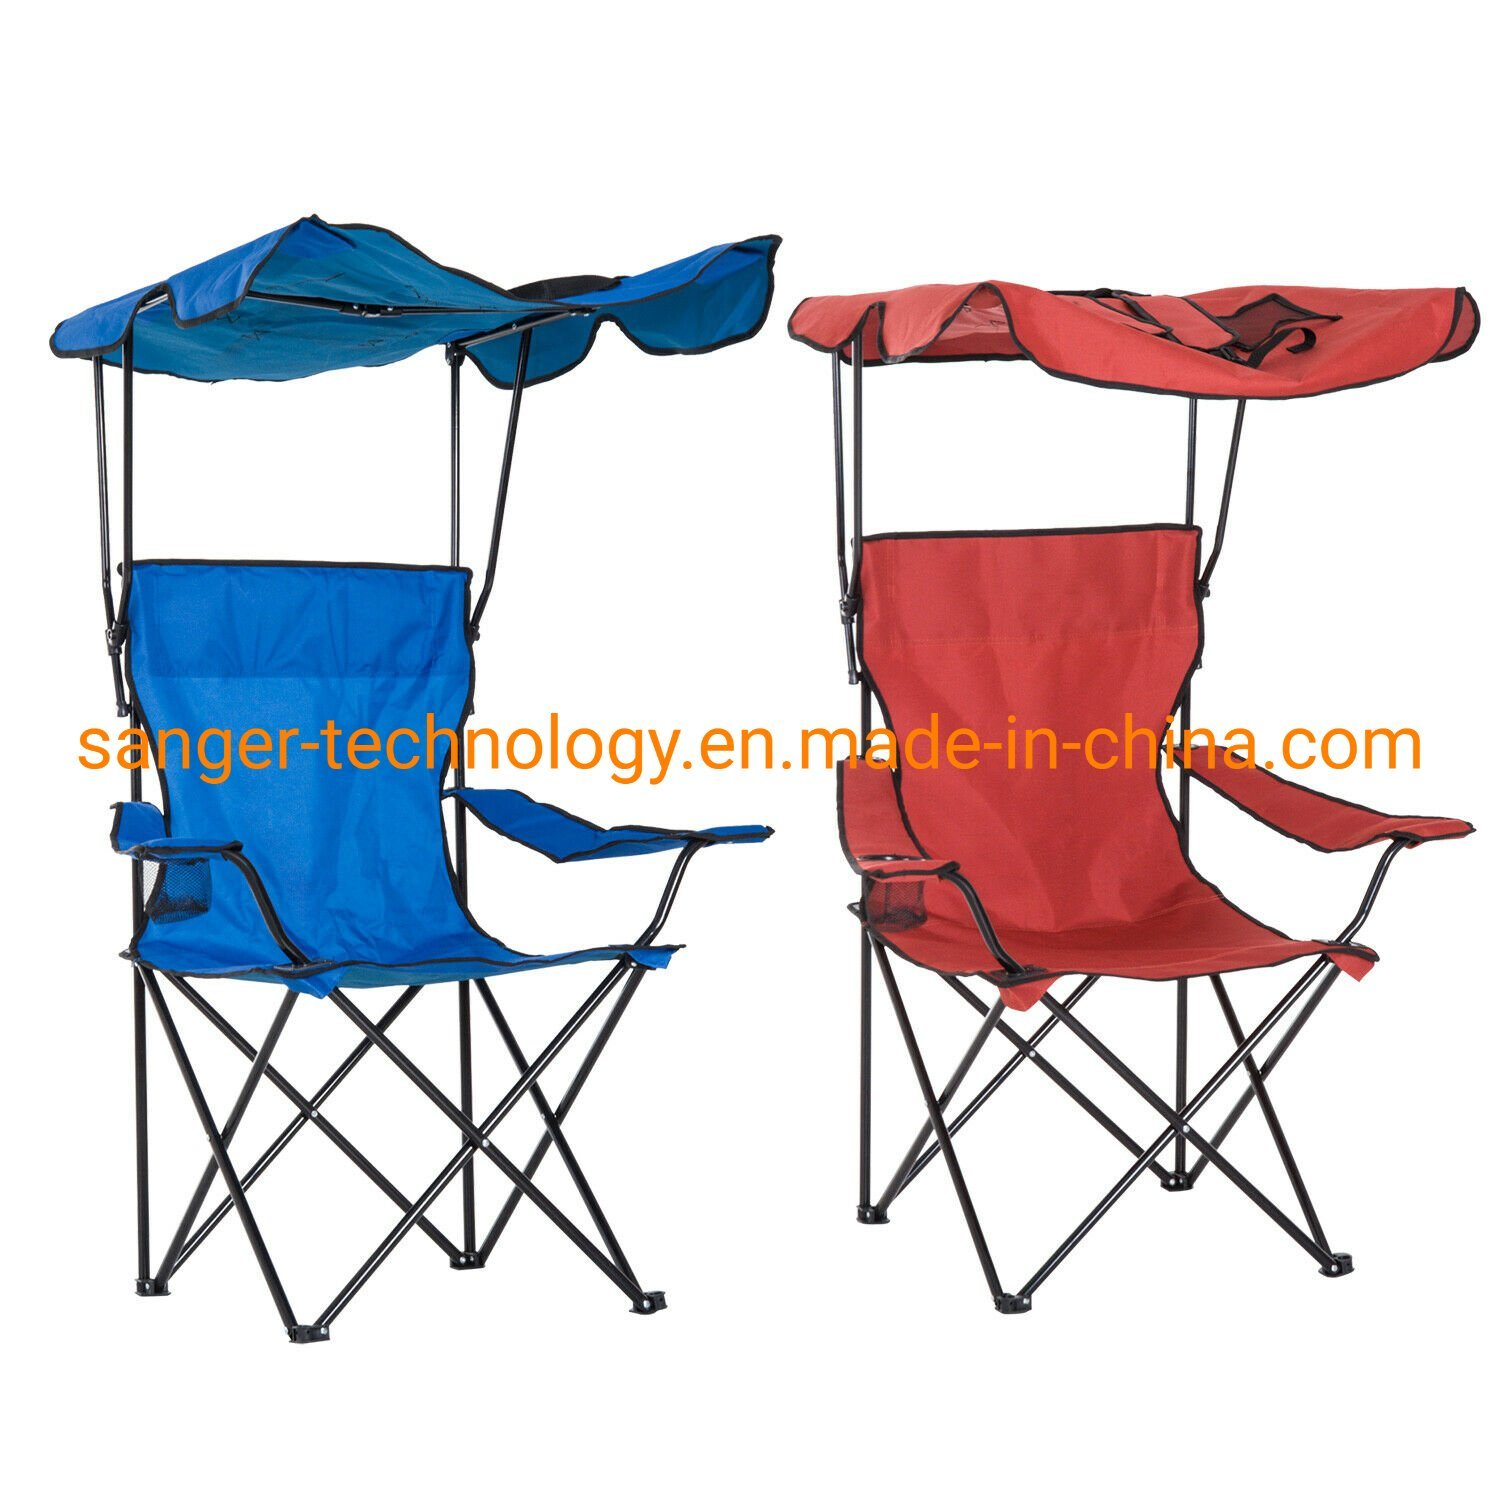 Hiking Black//Gold Camping,Travel Seat EASY BIG Mini Stools Foldable Portable Campstools for Outdoor Fishing Small Size for Kids